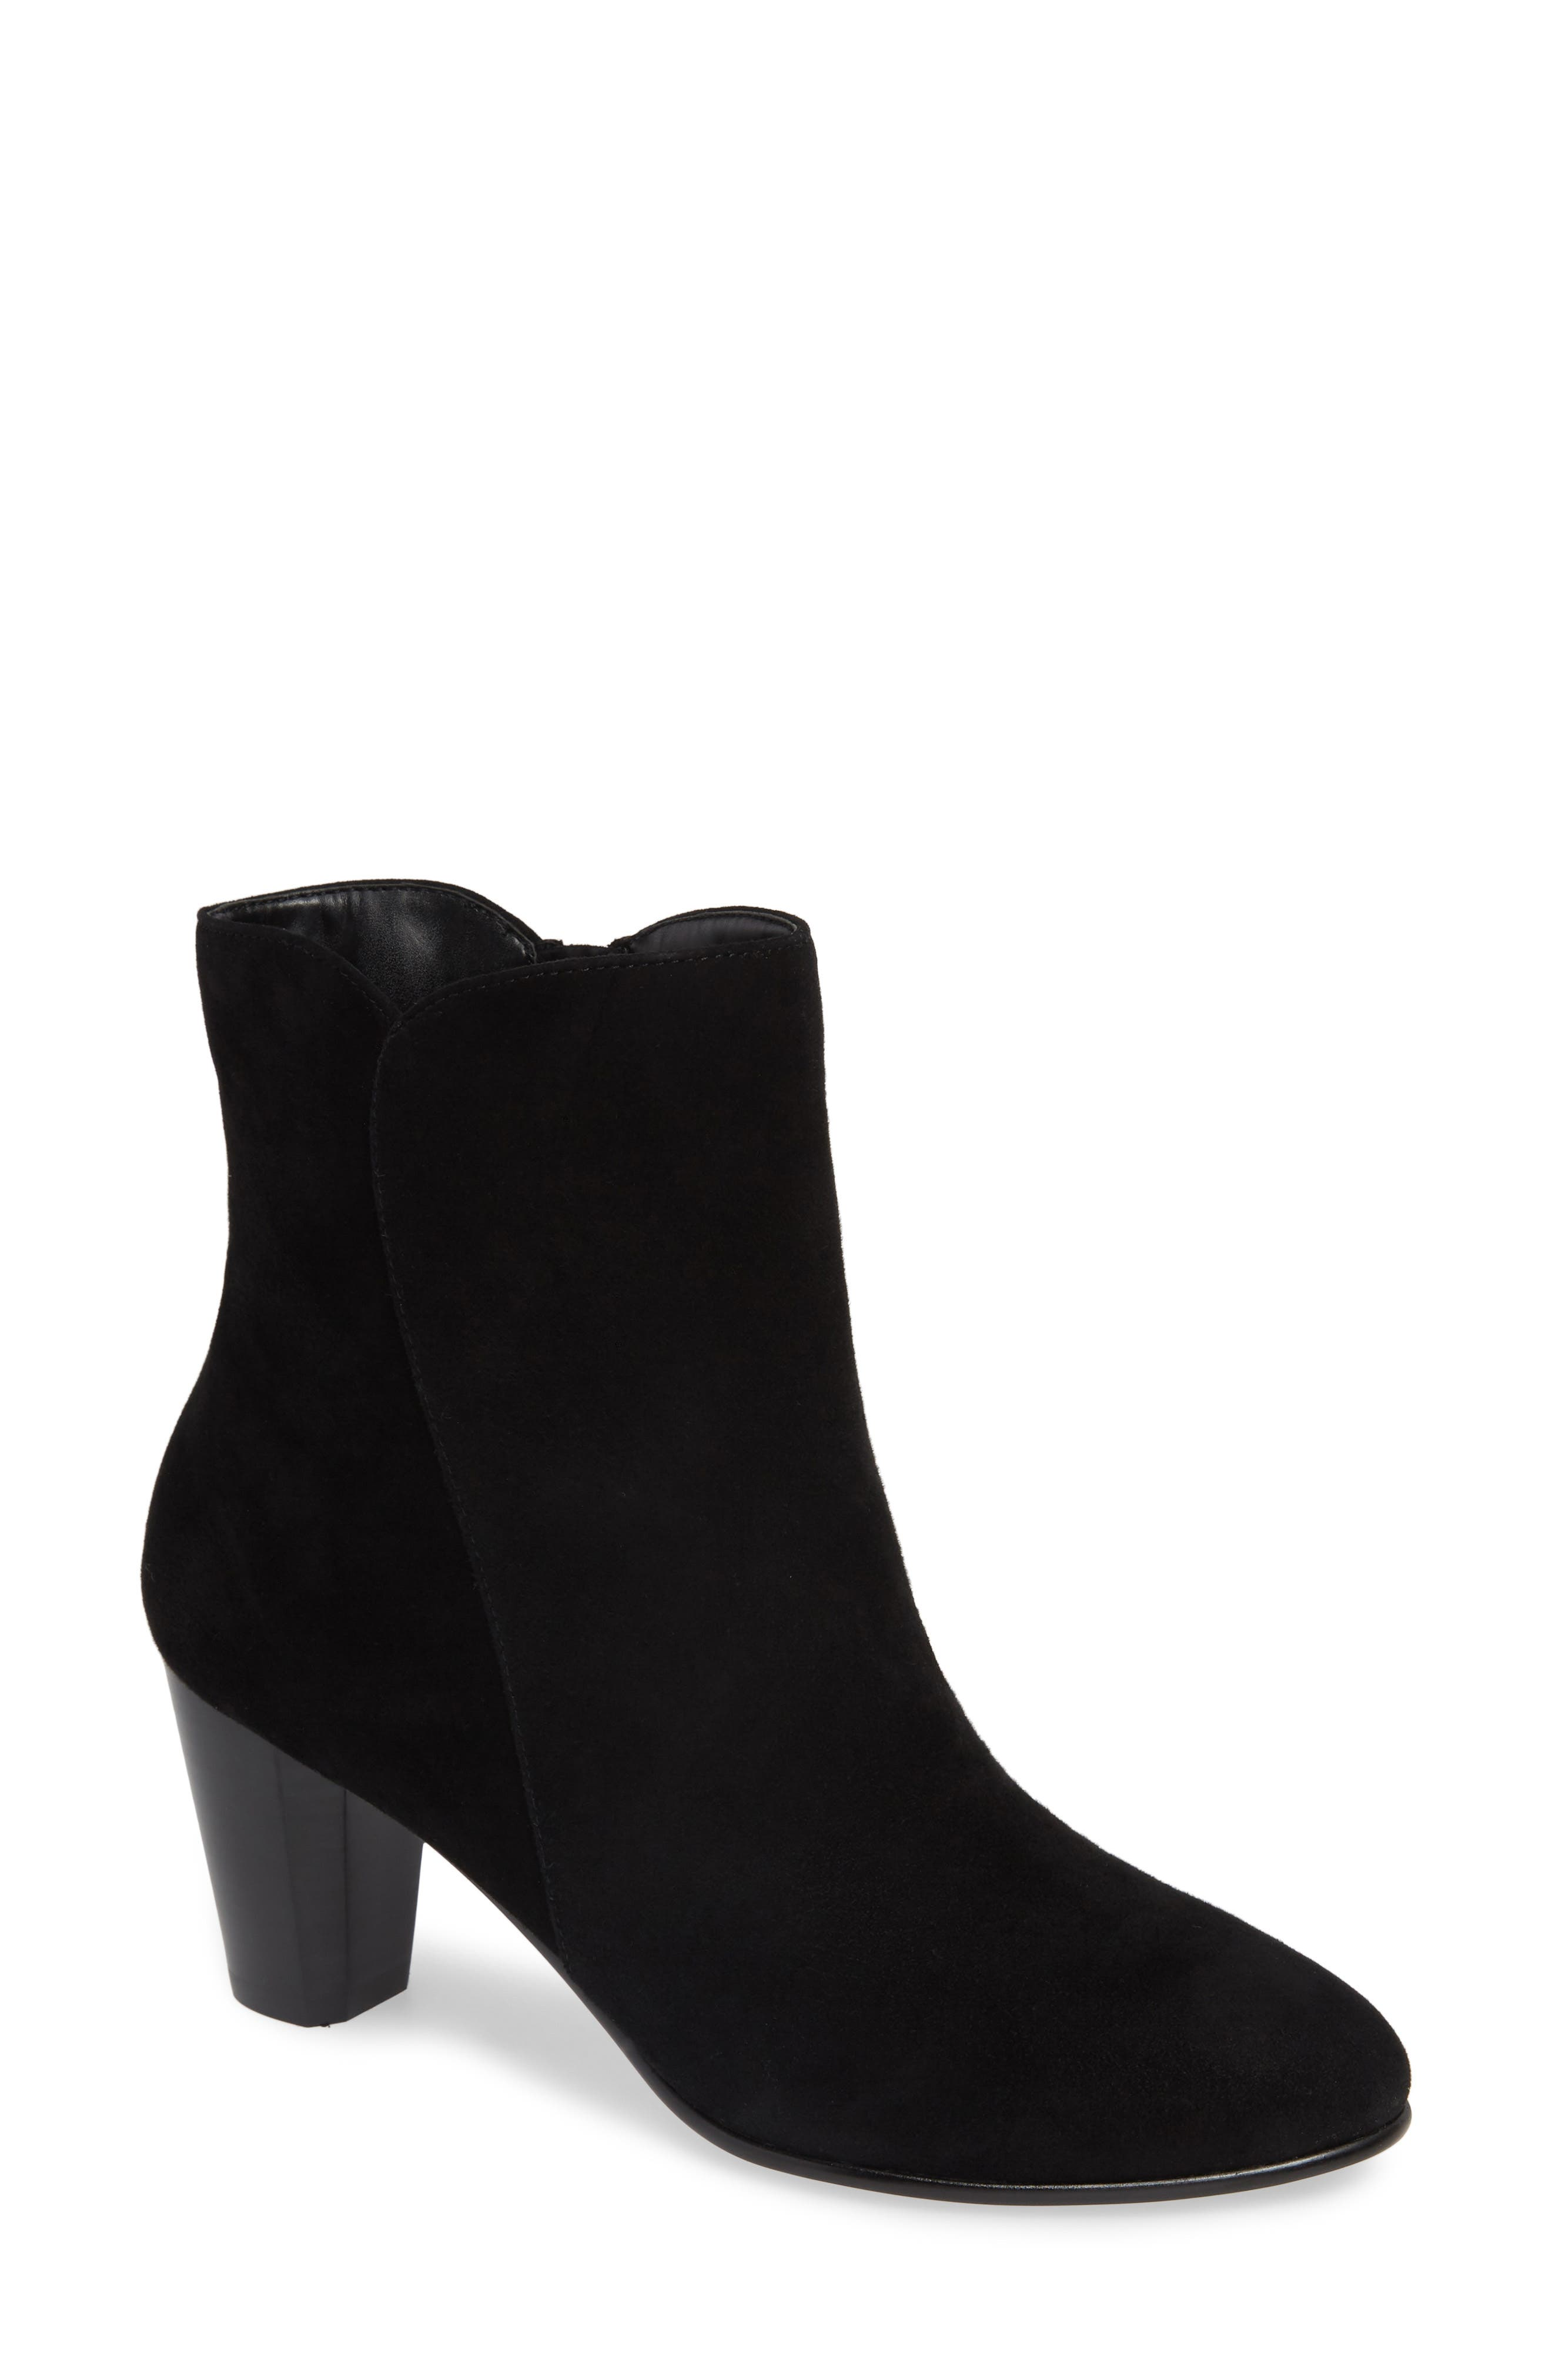 David Tate Alexa Bootie, Black